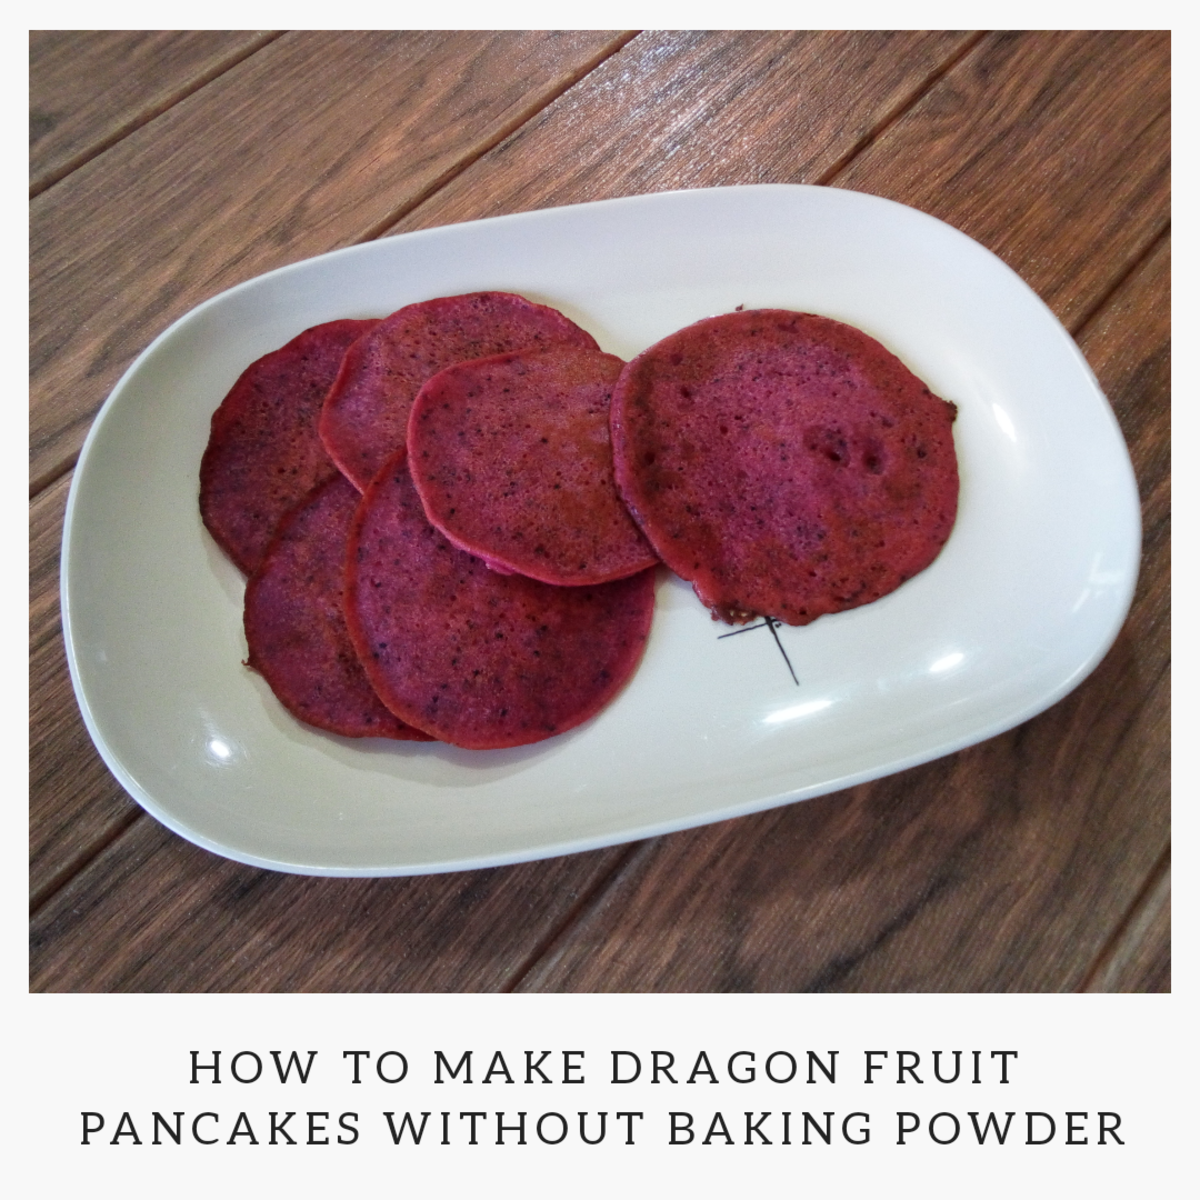 Dragon fruit pancakes without baking powder